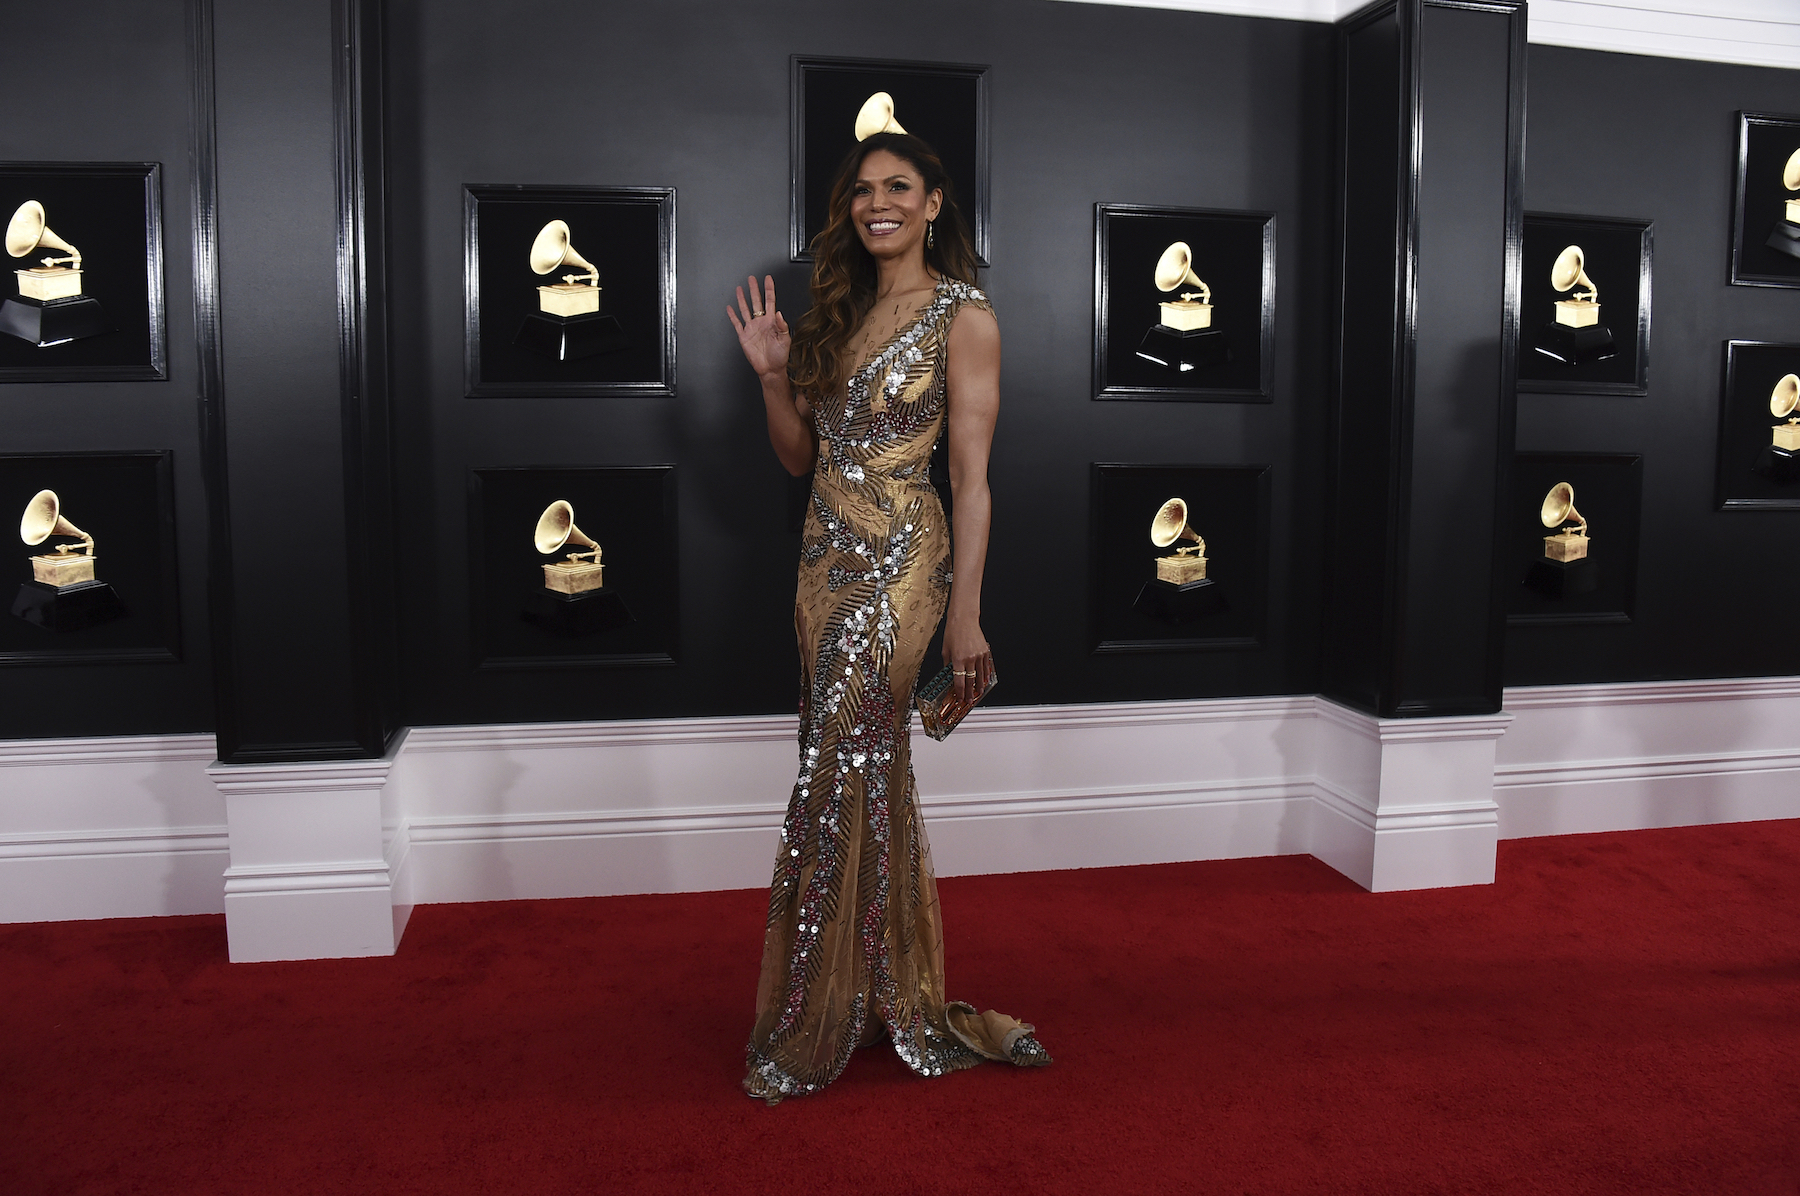 "<div class=""meta image-caption""><div class=""origin-logo origin-image ap""><span>AP</span></div><span class=""caption-text"">Merle Dandridge arrives at the 61st annual Grammy Awards at the Staples Center on Sunday, Feb. 10, 2019, in Los Angeles. (Jordan Strauss/Invision/AP)</span></div>"